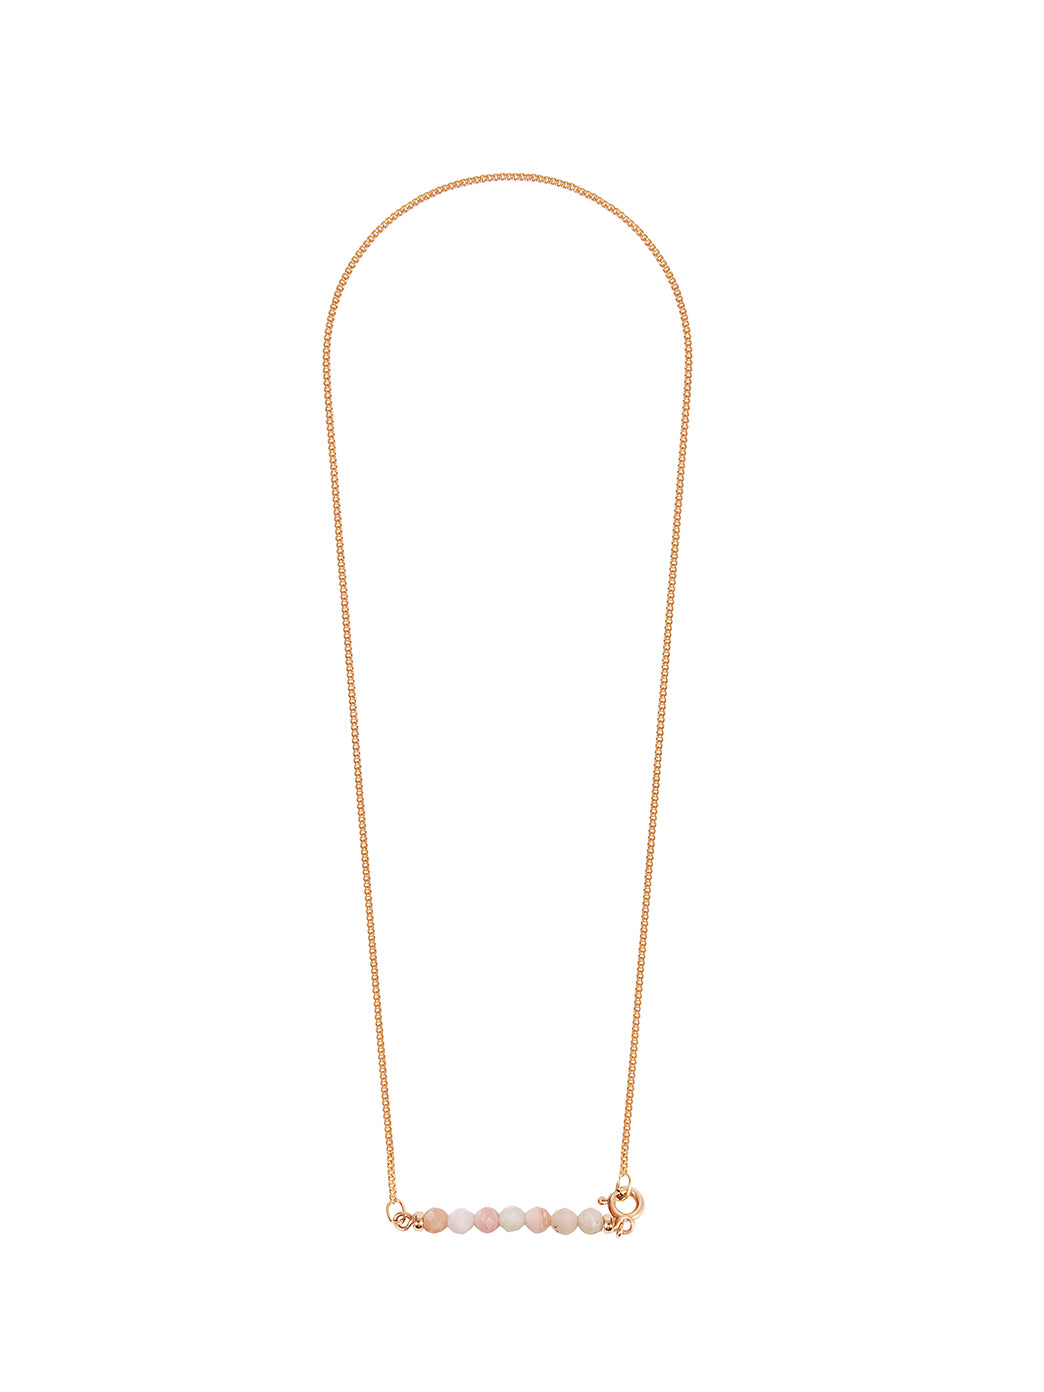 Fiorina Jewellery Gold Friendship Necklace Pink Opal